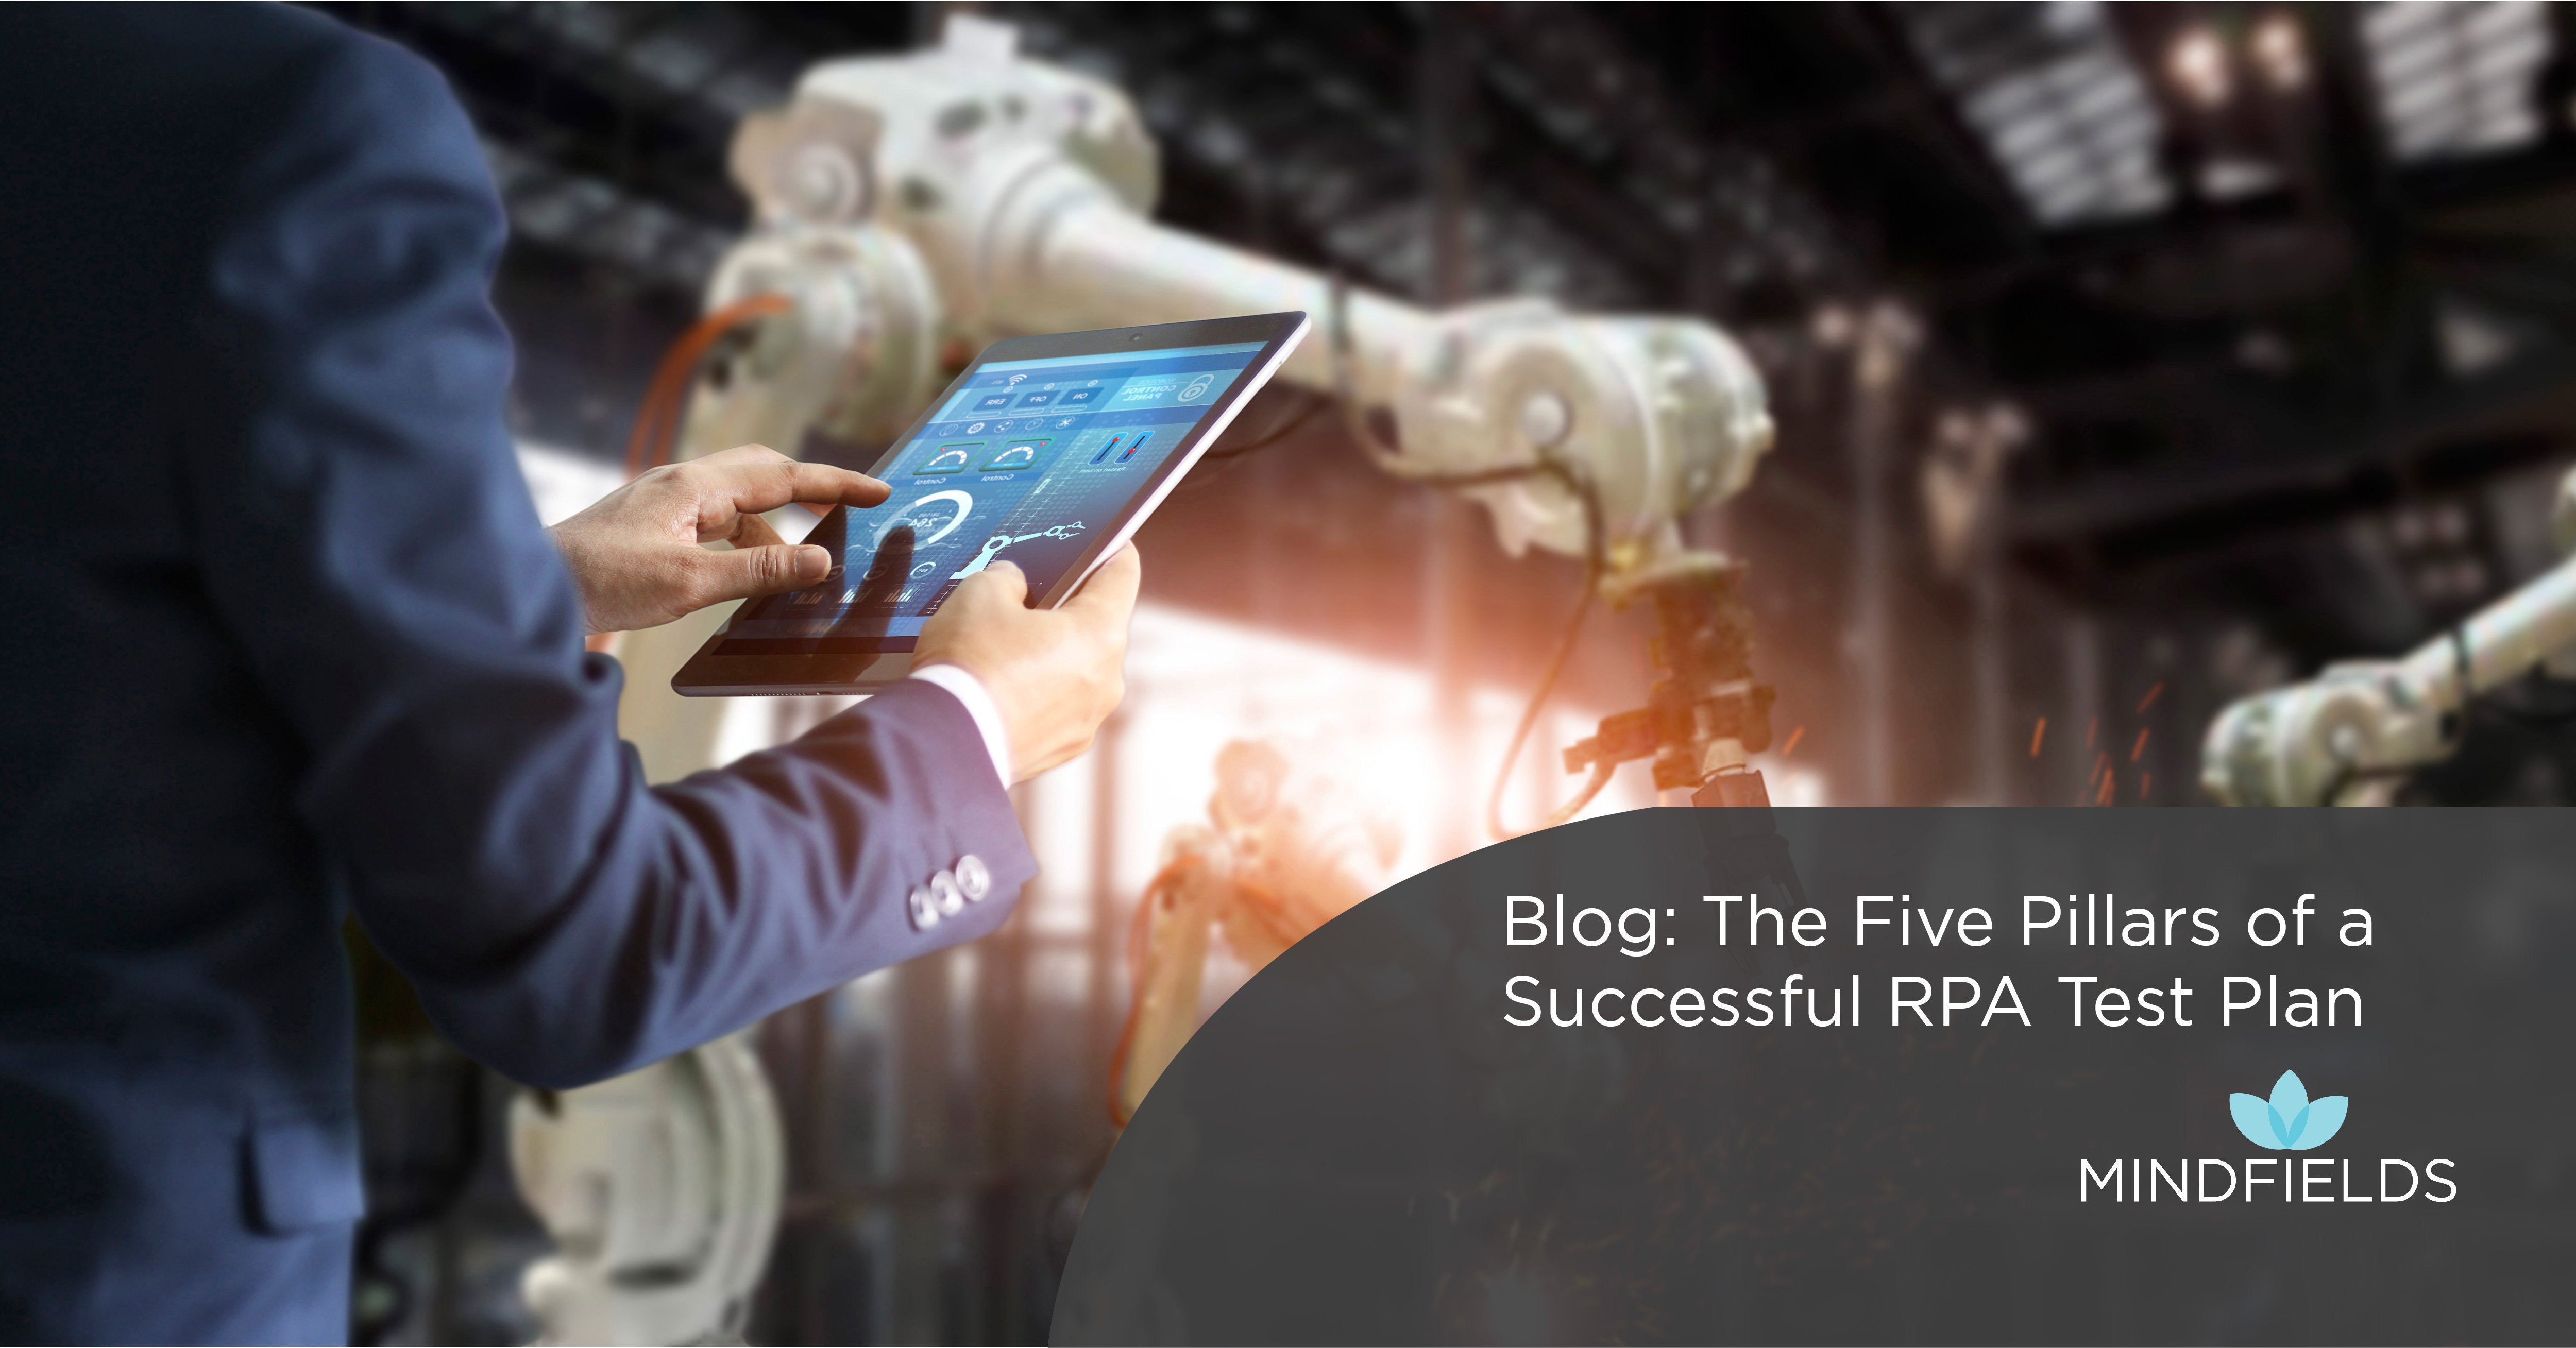 The Five Pillars of a Successful RPA Test Plan